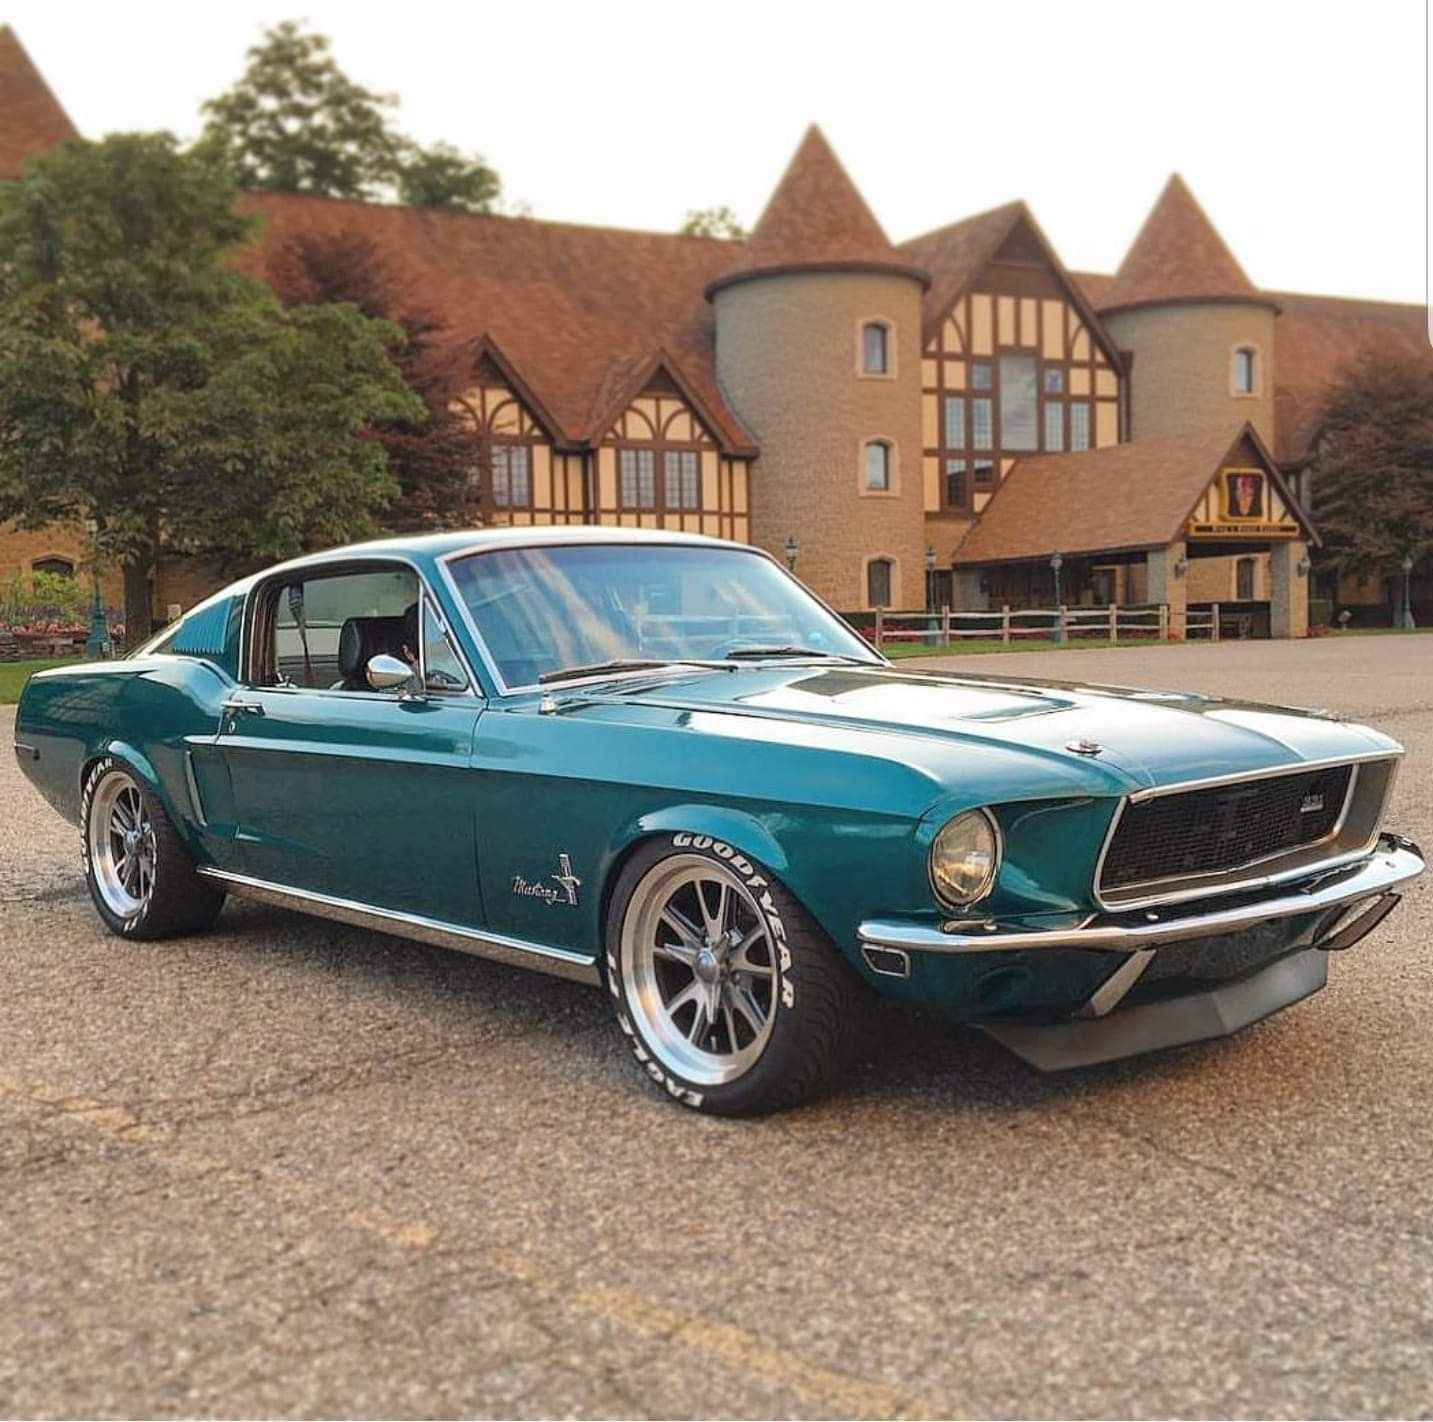 Pin By Renee' Woodward On American Muscle Cars